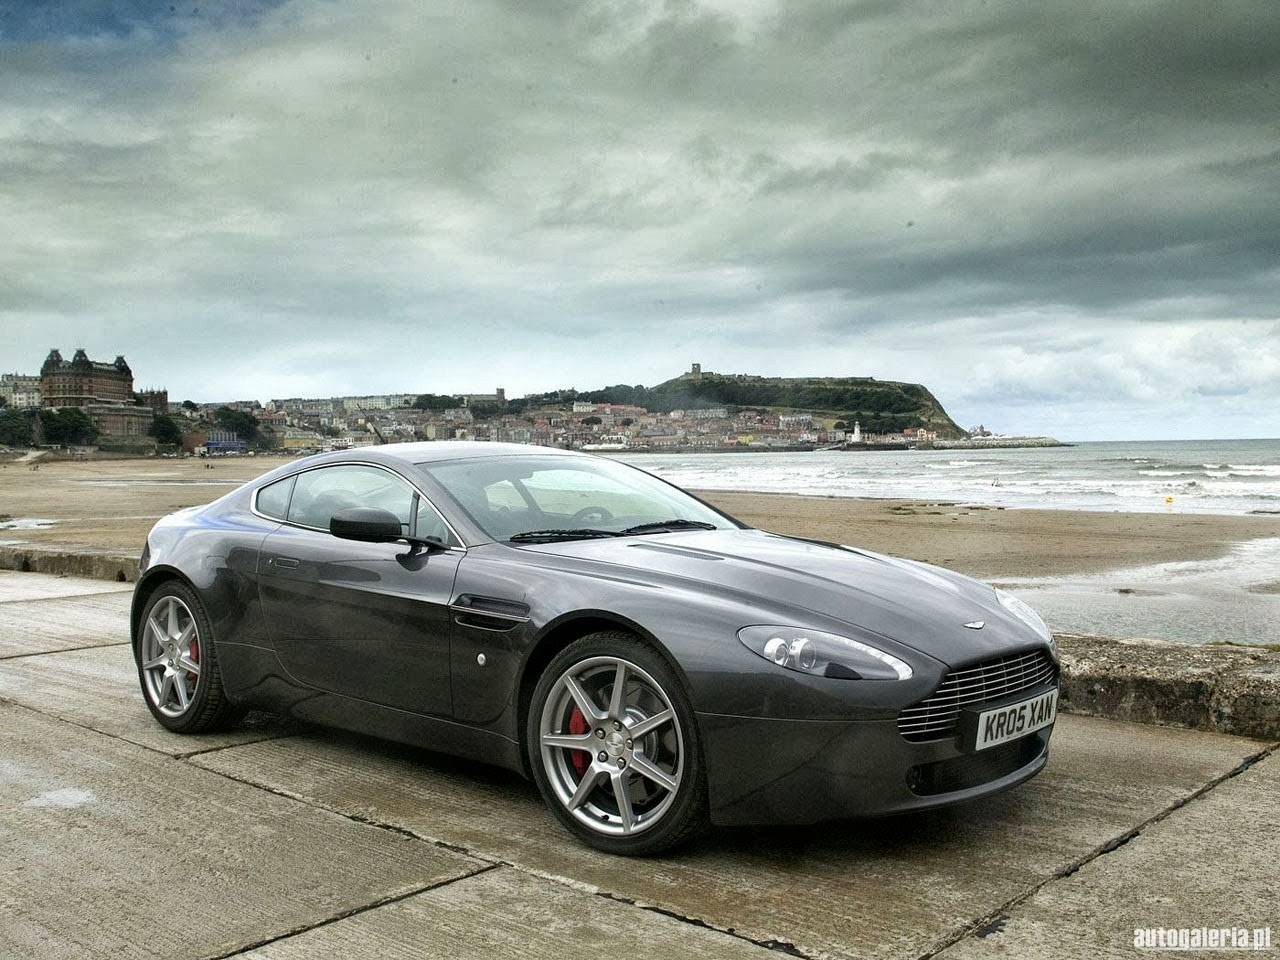 2014 aston martin v8 vantage sport exotic coupe wallpaper prices. Cars Review. Best American Auto & Cars Review